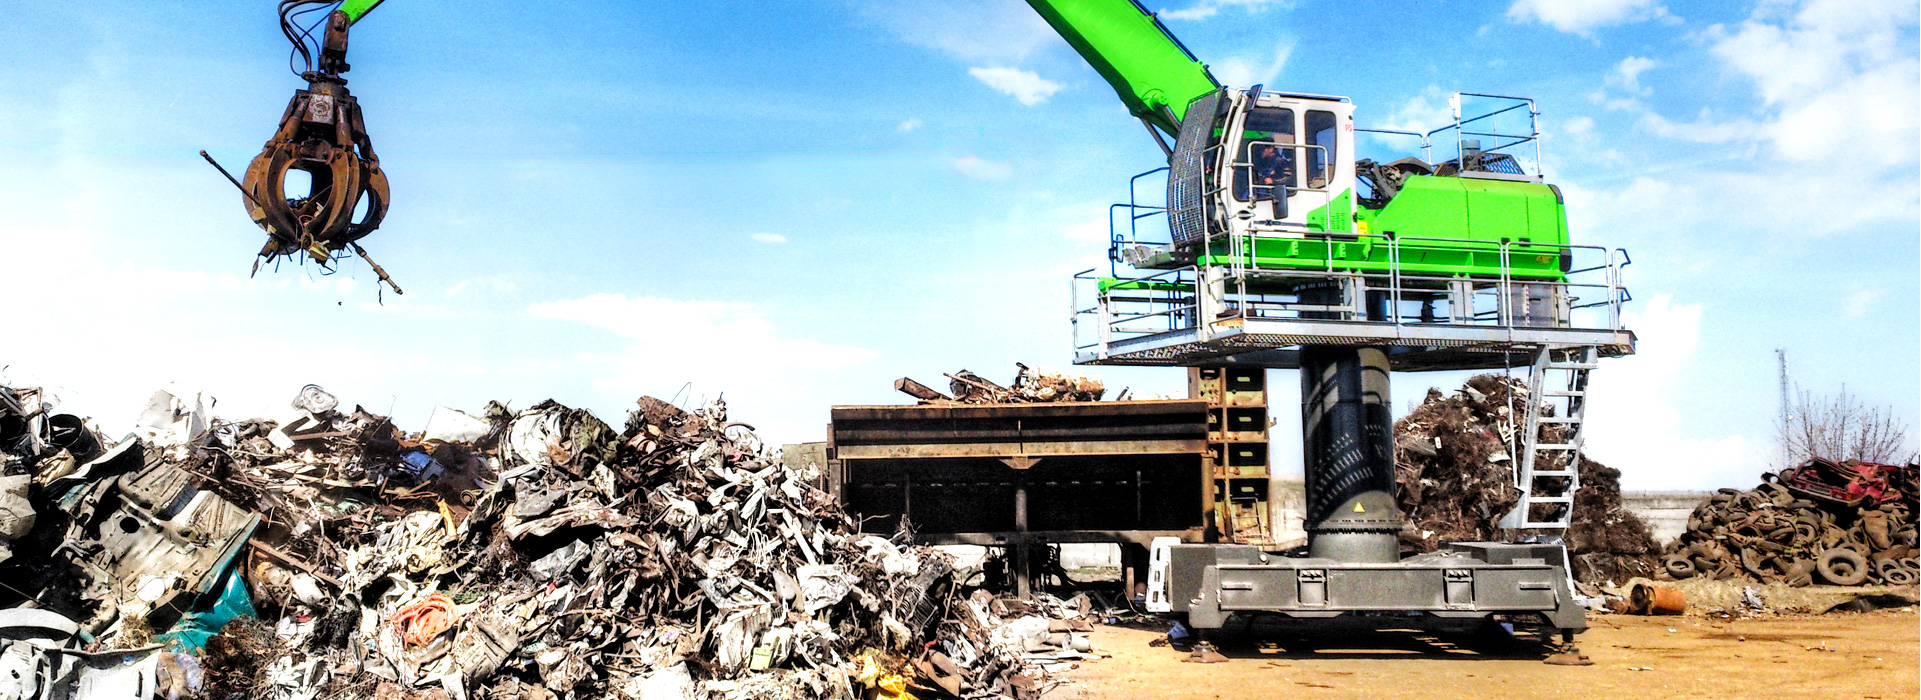 Scrap Dealer Dubai - UAE - Abu Dhabi, our yard in Sharjah